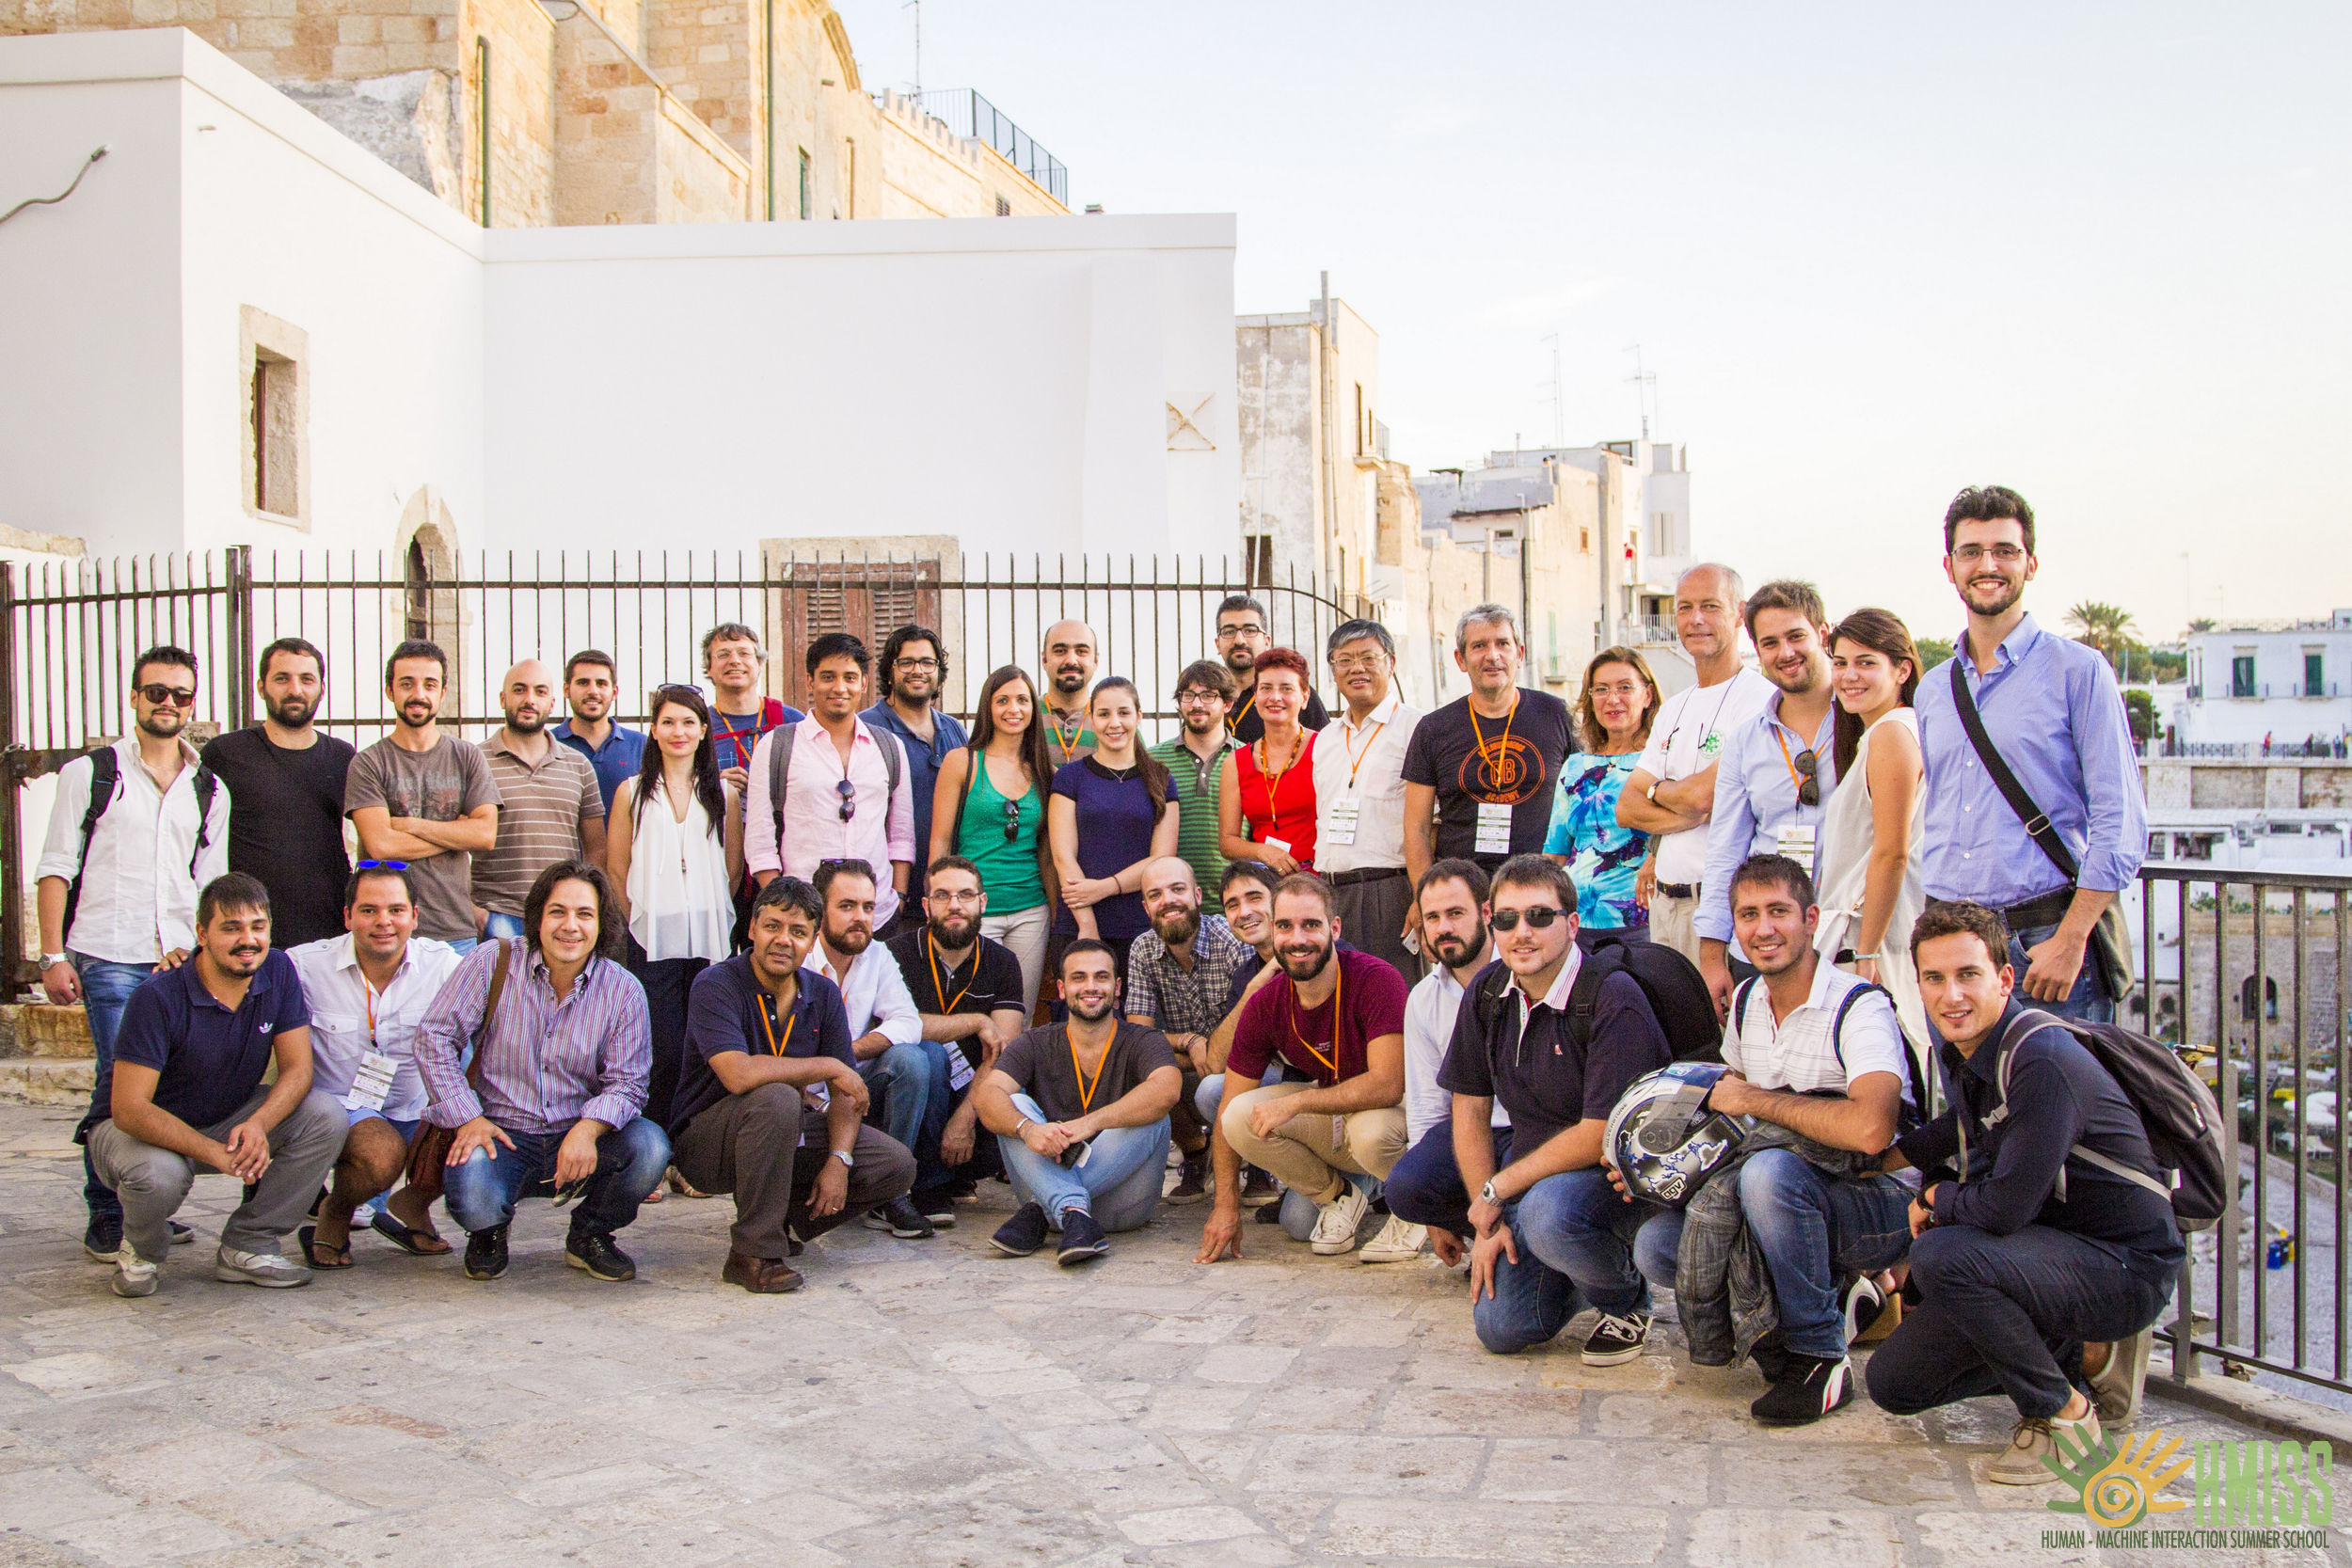 Human Machine Interaction Summer School, Monopoli-Puglia (Italy)